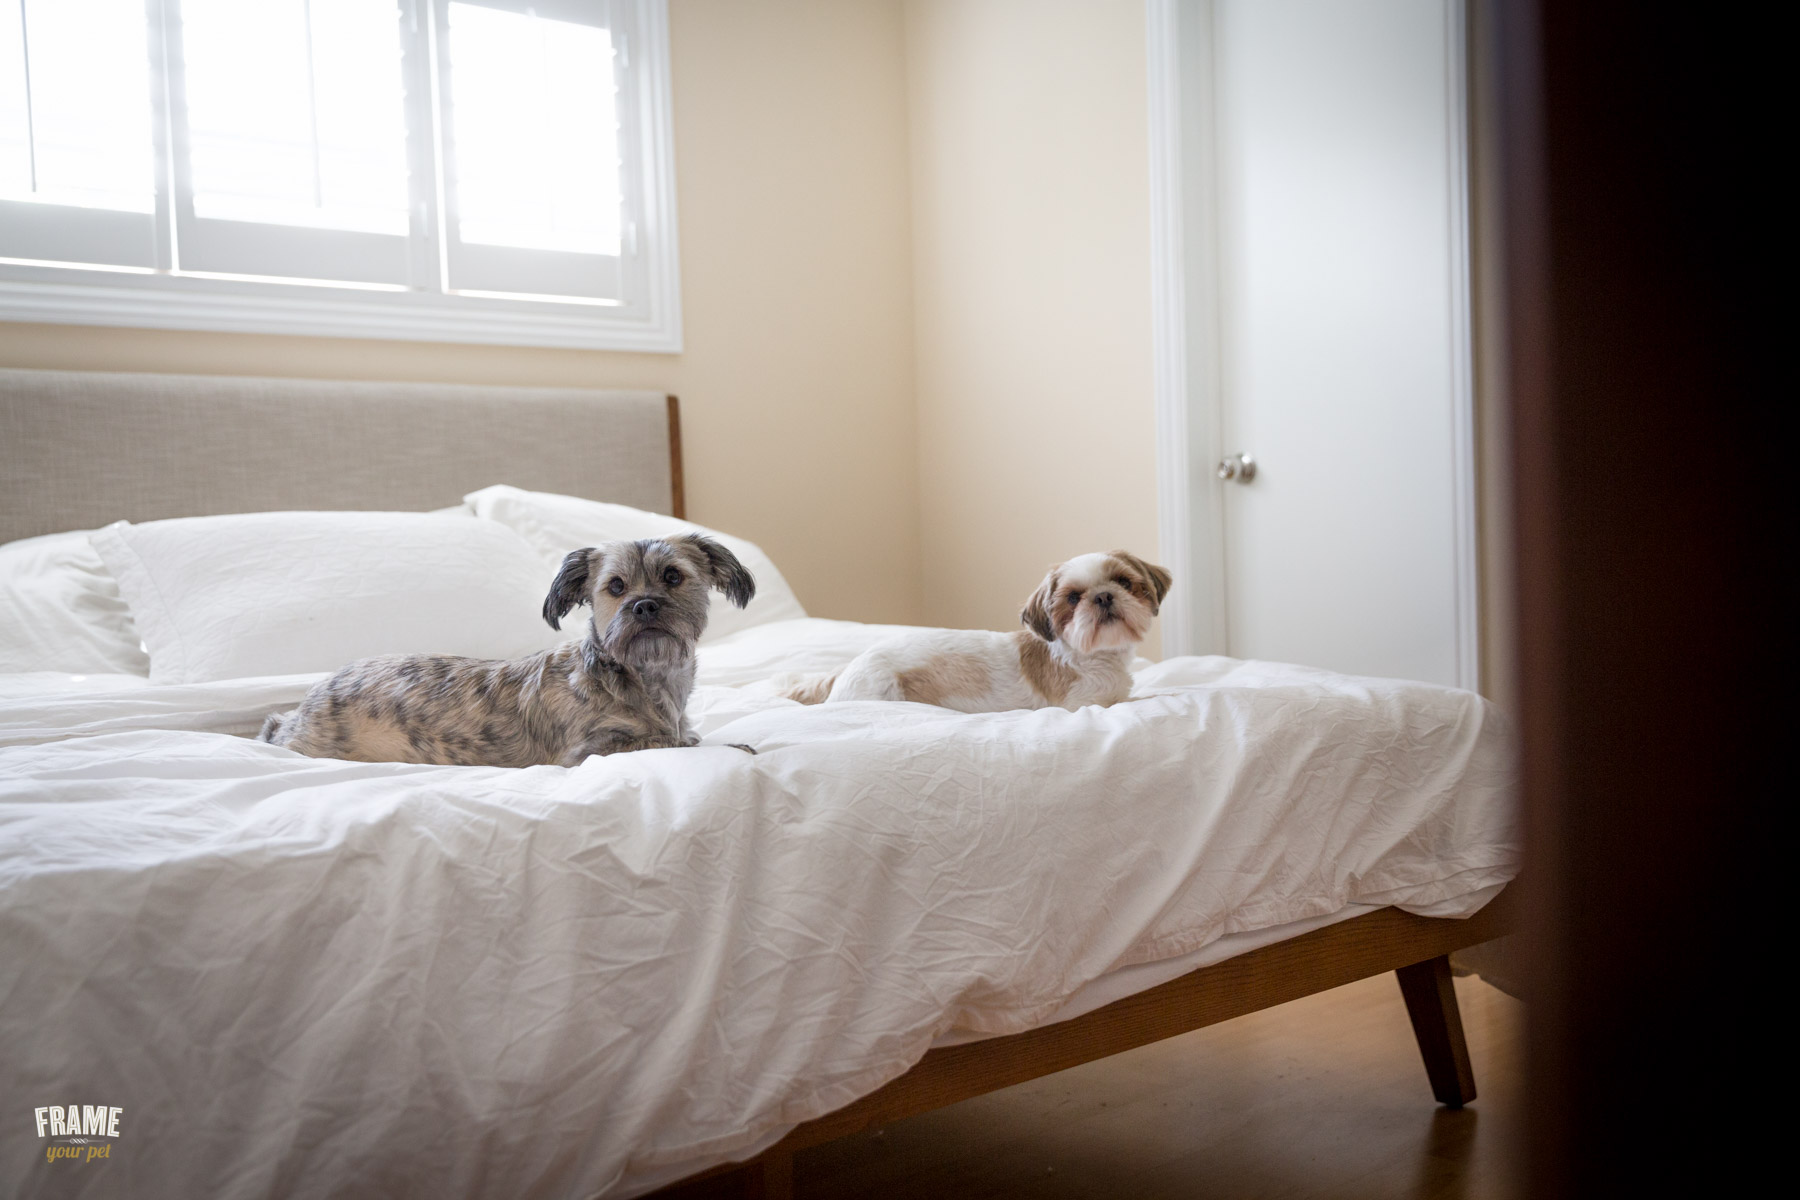 dogs-laying-on-bed.jpg